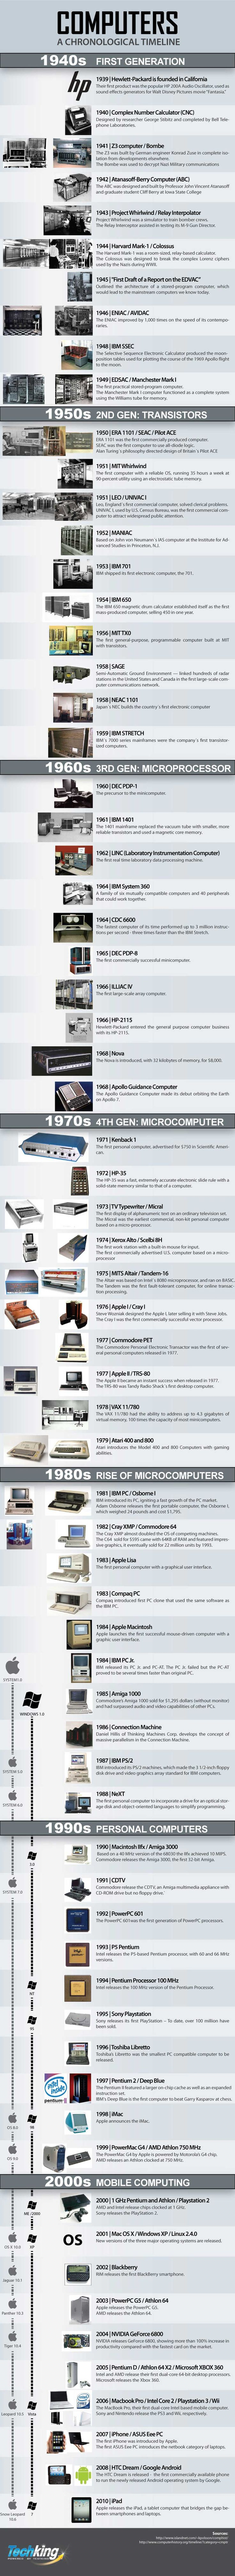 http://www.bitrebels.com/geek/computers-an-awesome-chronological-timeline-infographic/